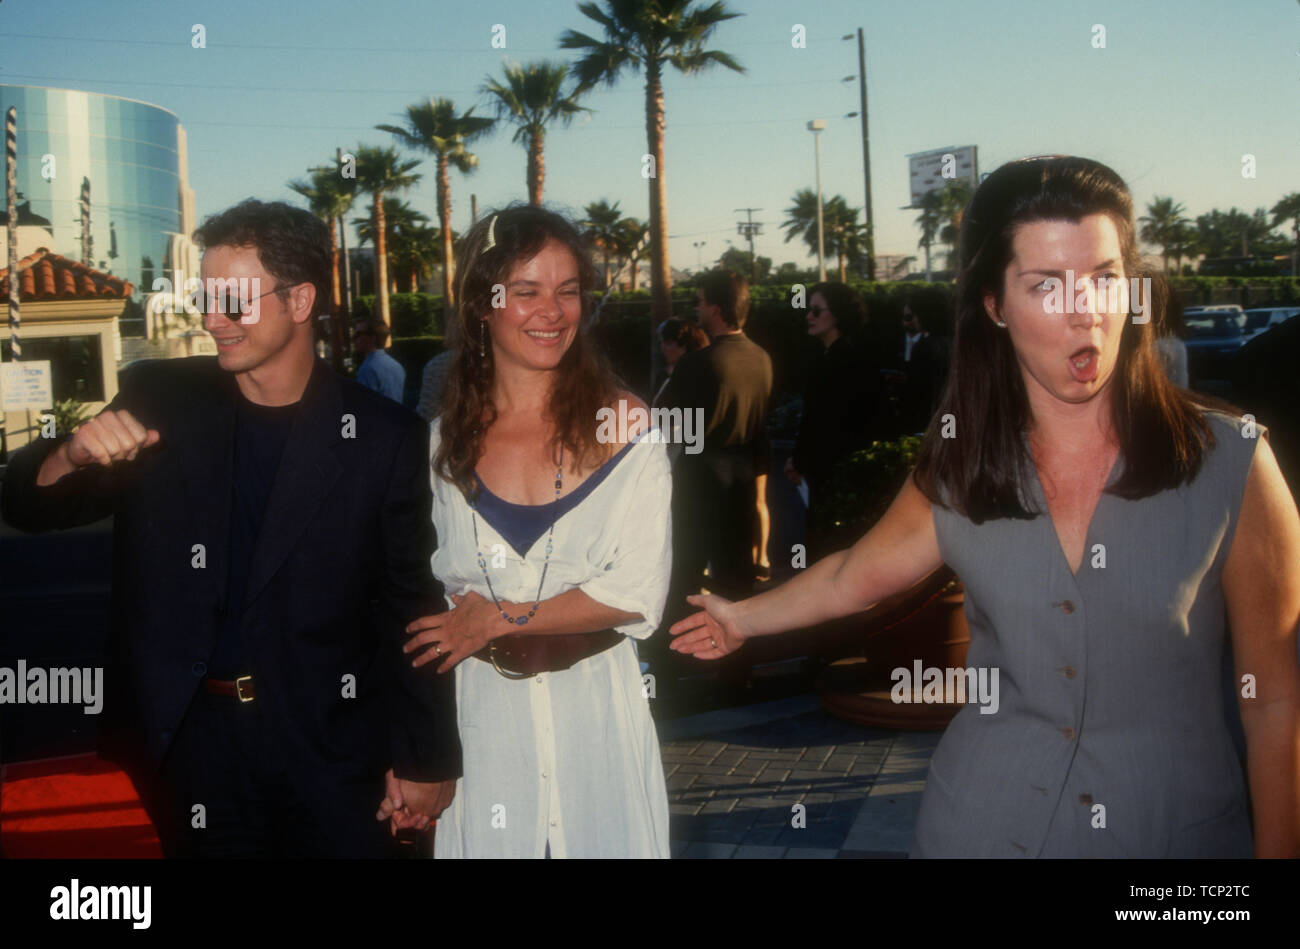 Hollywood, California, USA 23rd June 1994 Actor Gary Sinise, wife actress Moira Harris and publicist Nanci Ryder attend Paramount Pictures 'Forrest Gump' Premiere on June 23, 1994 at Paramount Studios in Hollywood, California, USA. Photo by Barry King/Alamy Stock Photo - Stock Image